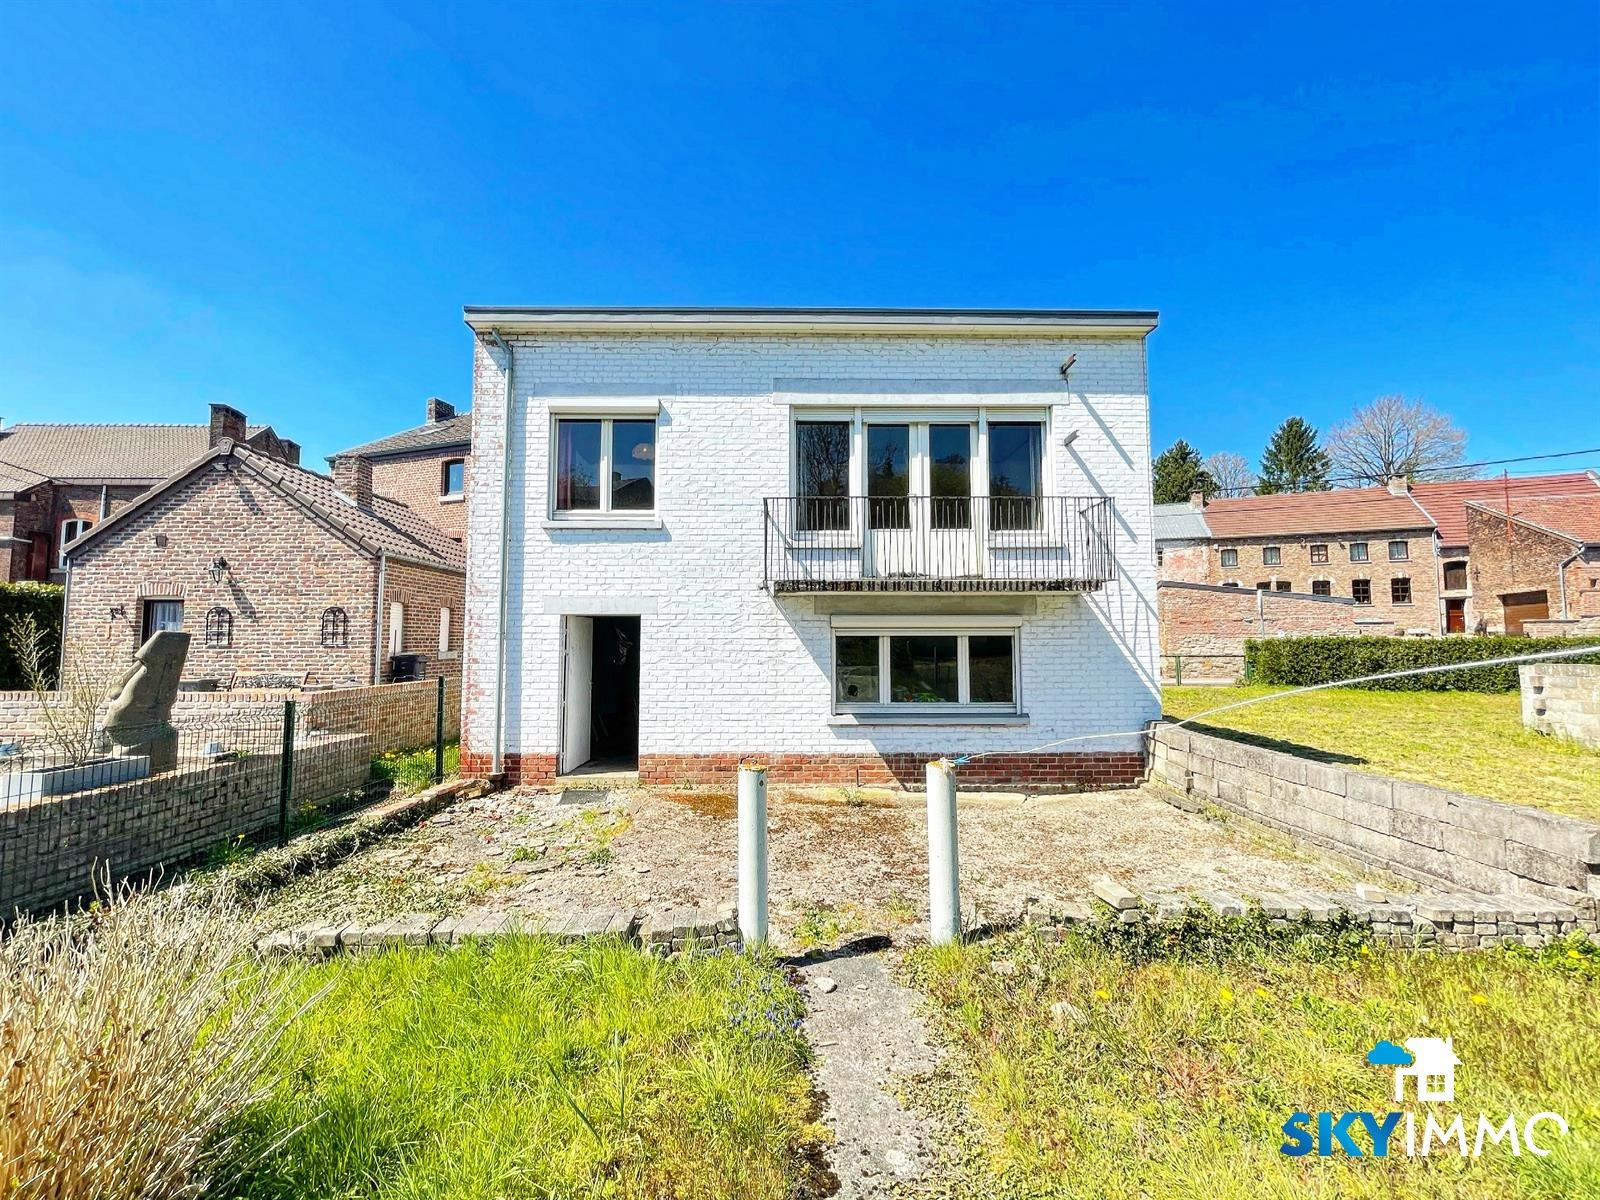 Huis - Flemalle - #4346611-15